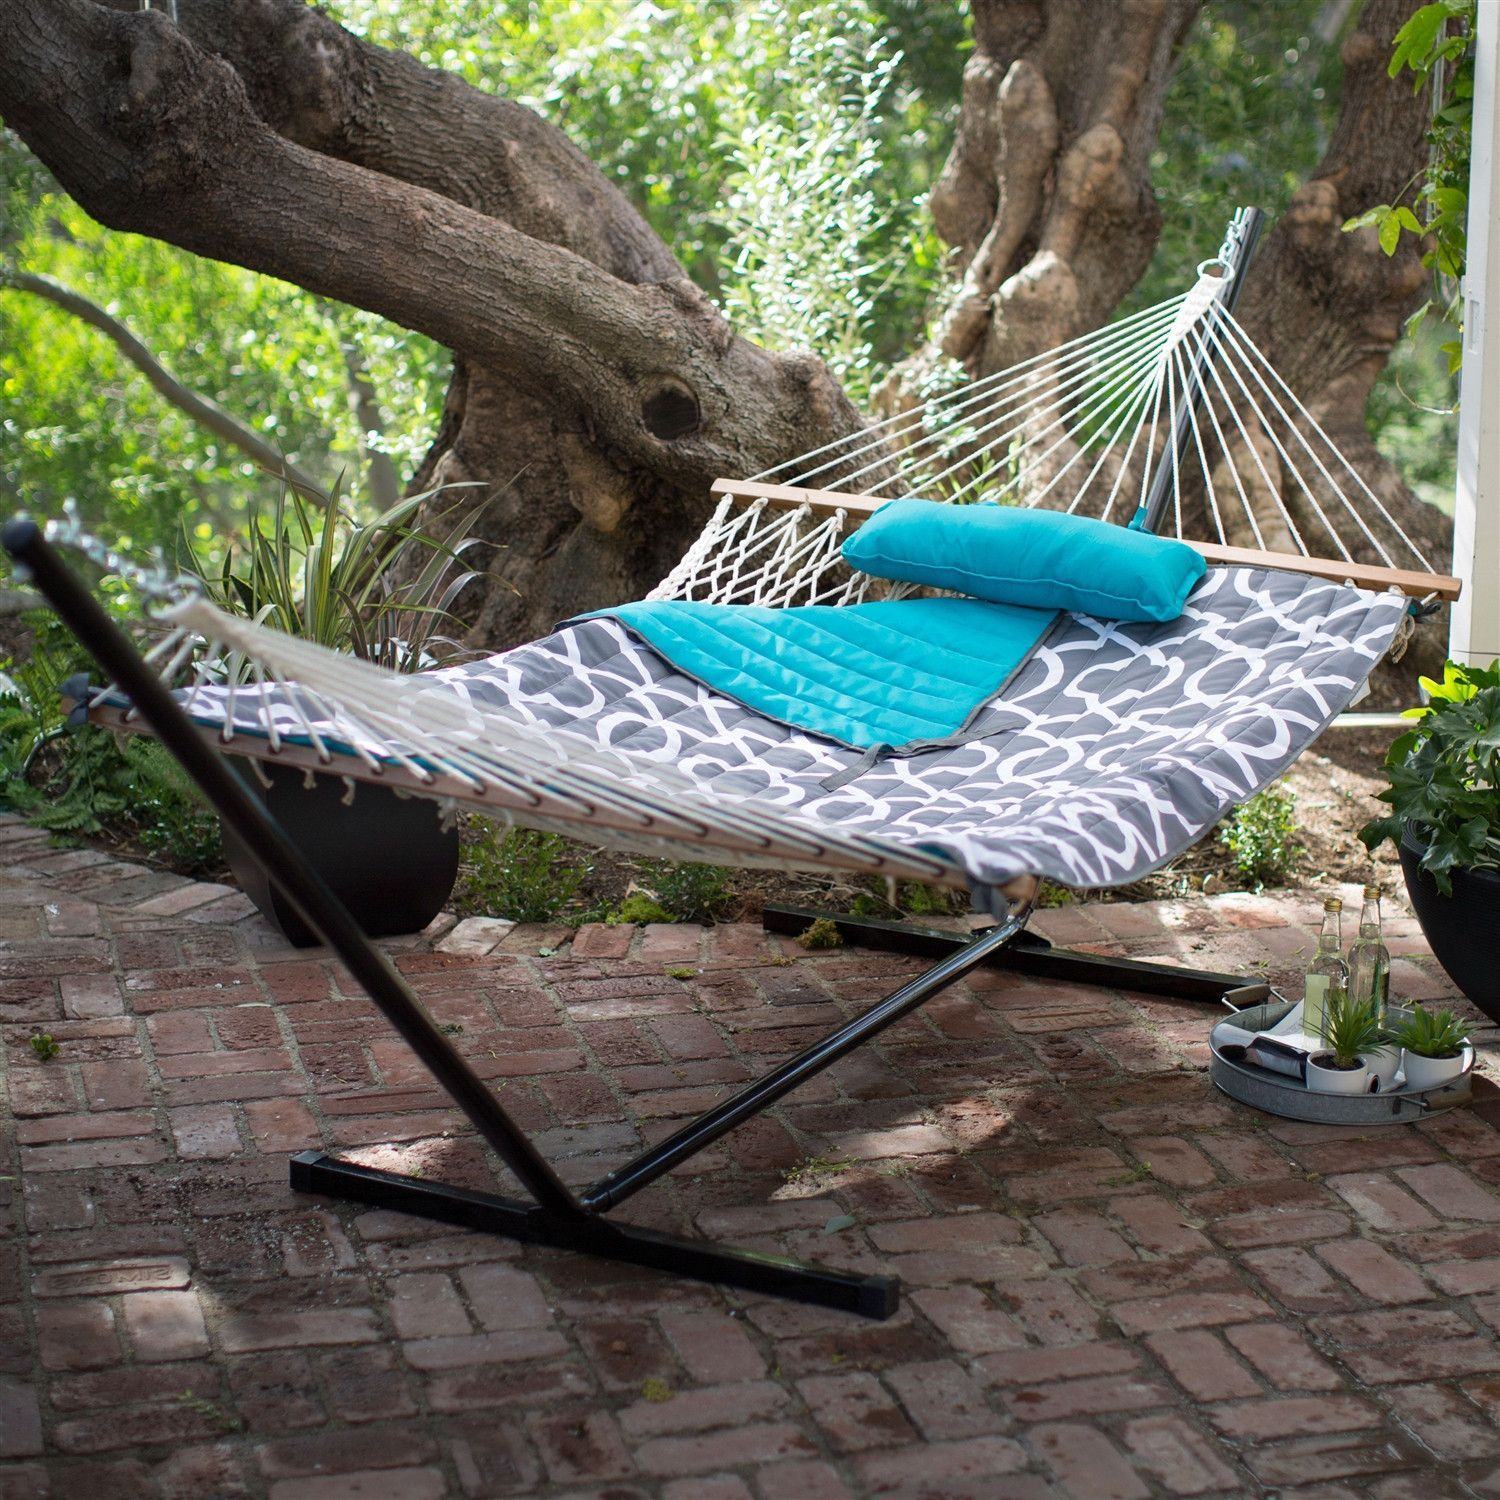 Cotton Rope 11 Ft Hammock With Metal Stand And Aqua